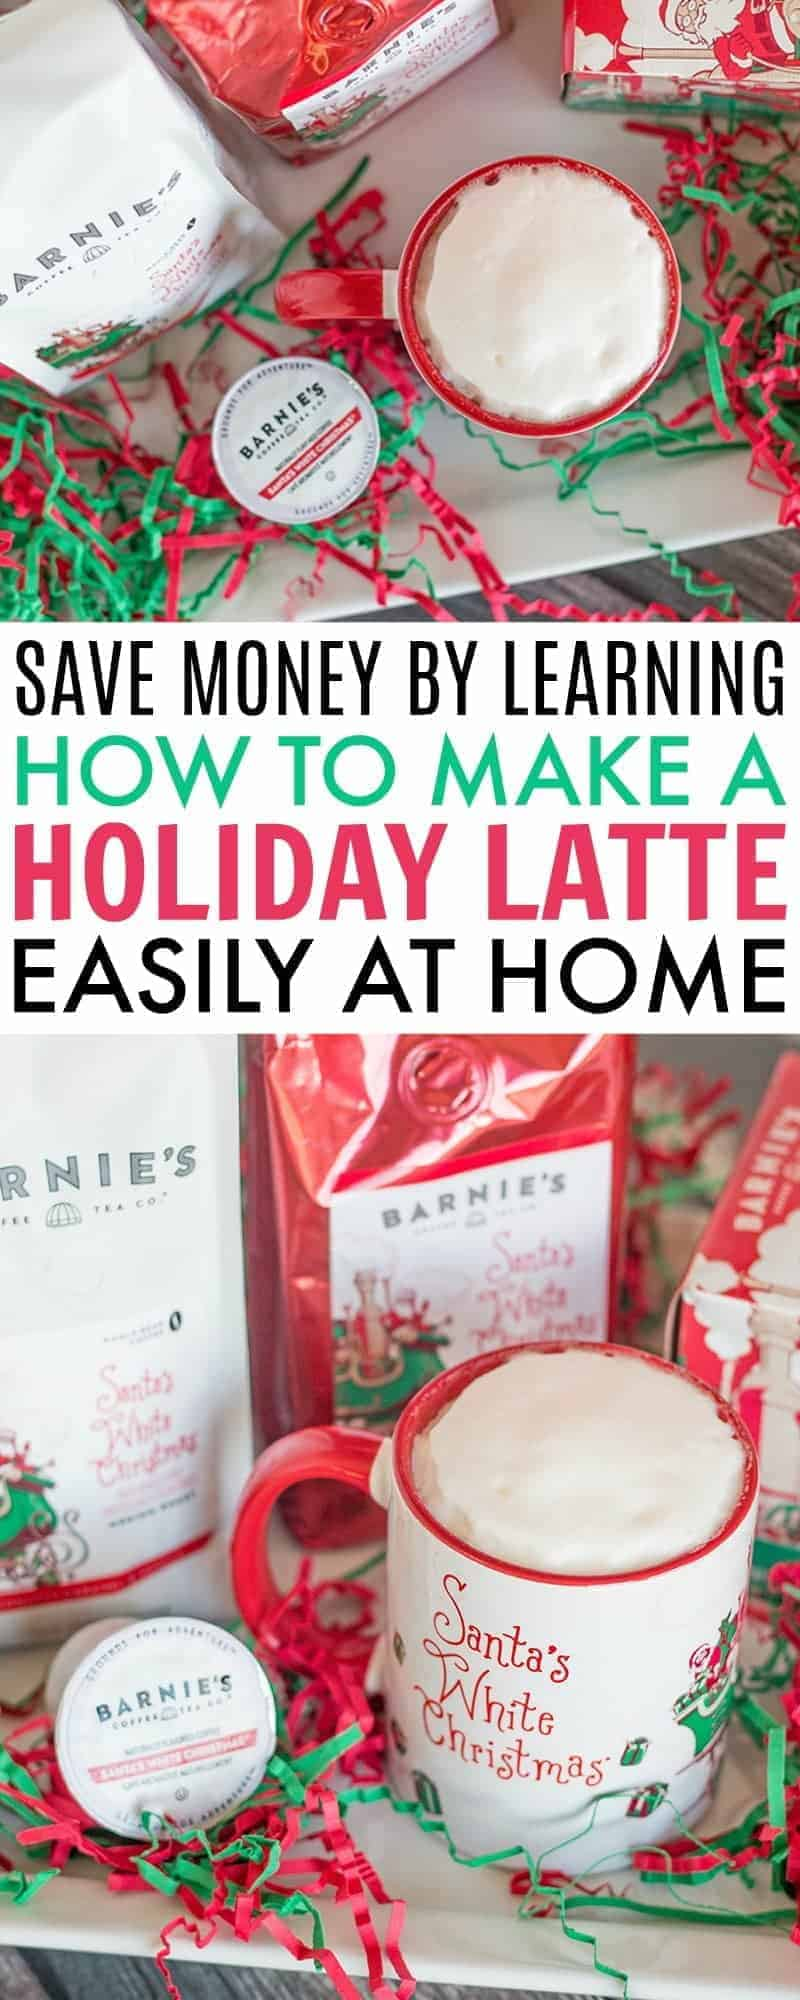 Learn how to make a delicious holiday latte easily at home with Barnie's Coffee Santa's White Christmas blend in whole bean, ground and k-cups. #coffee #latte